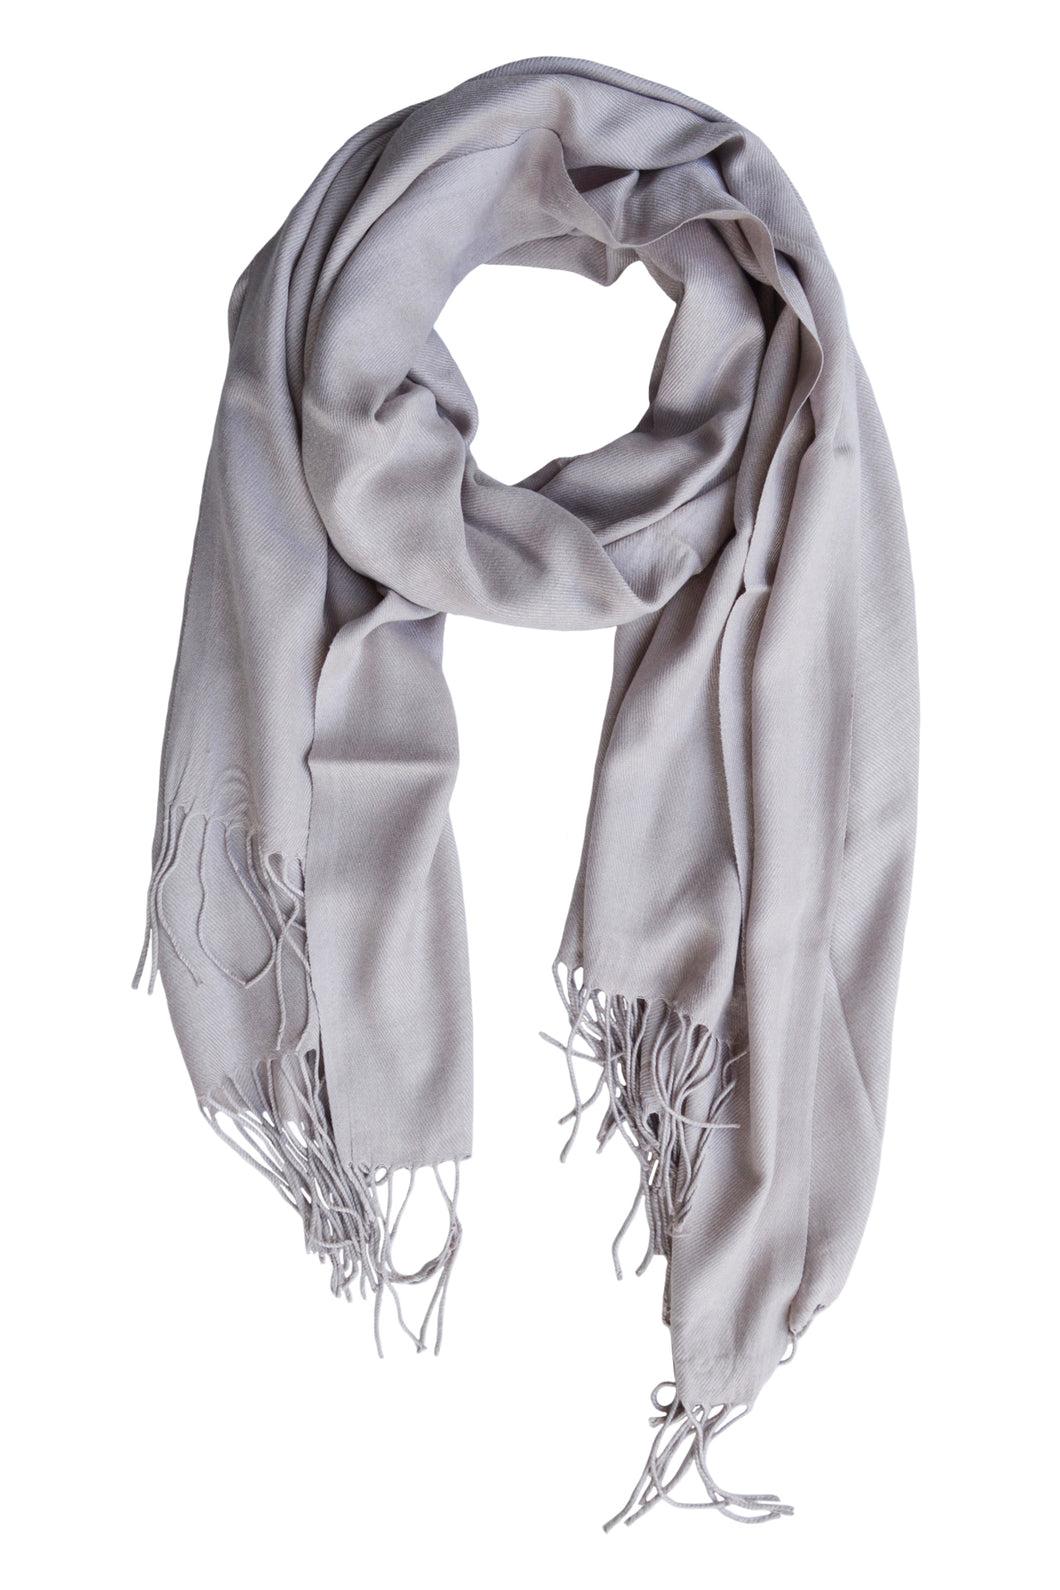 LUXE SANTORINI SCARF - TAUPE